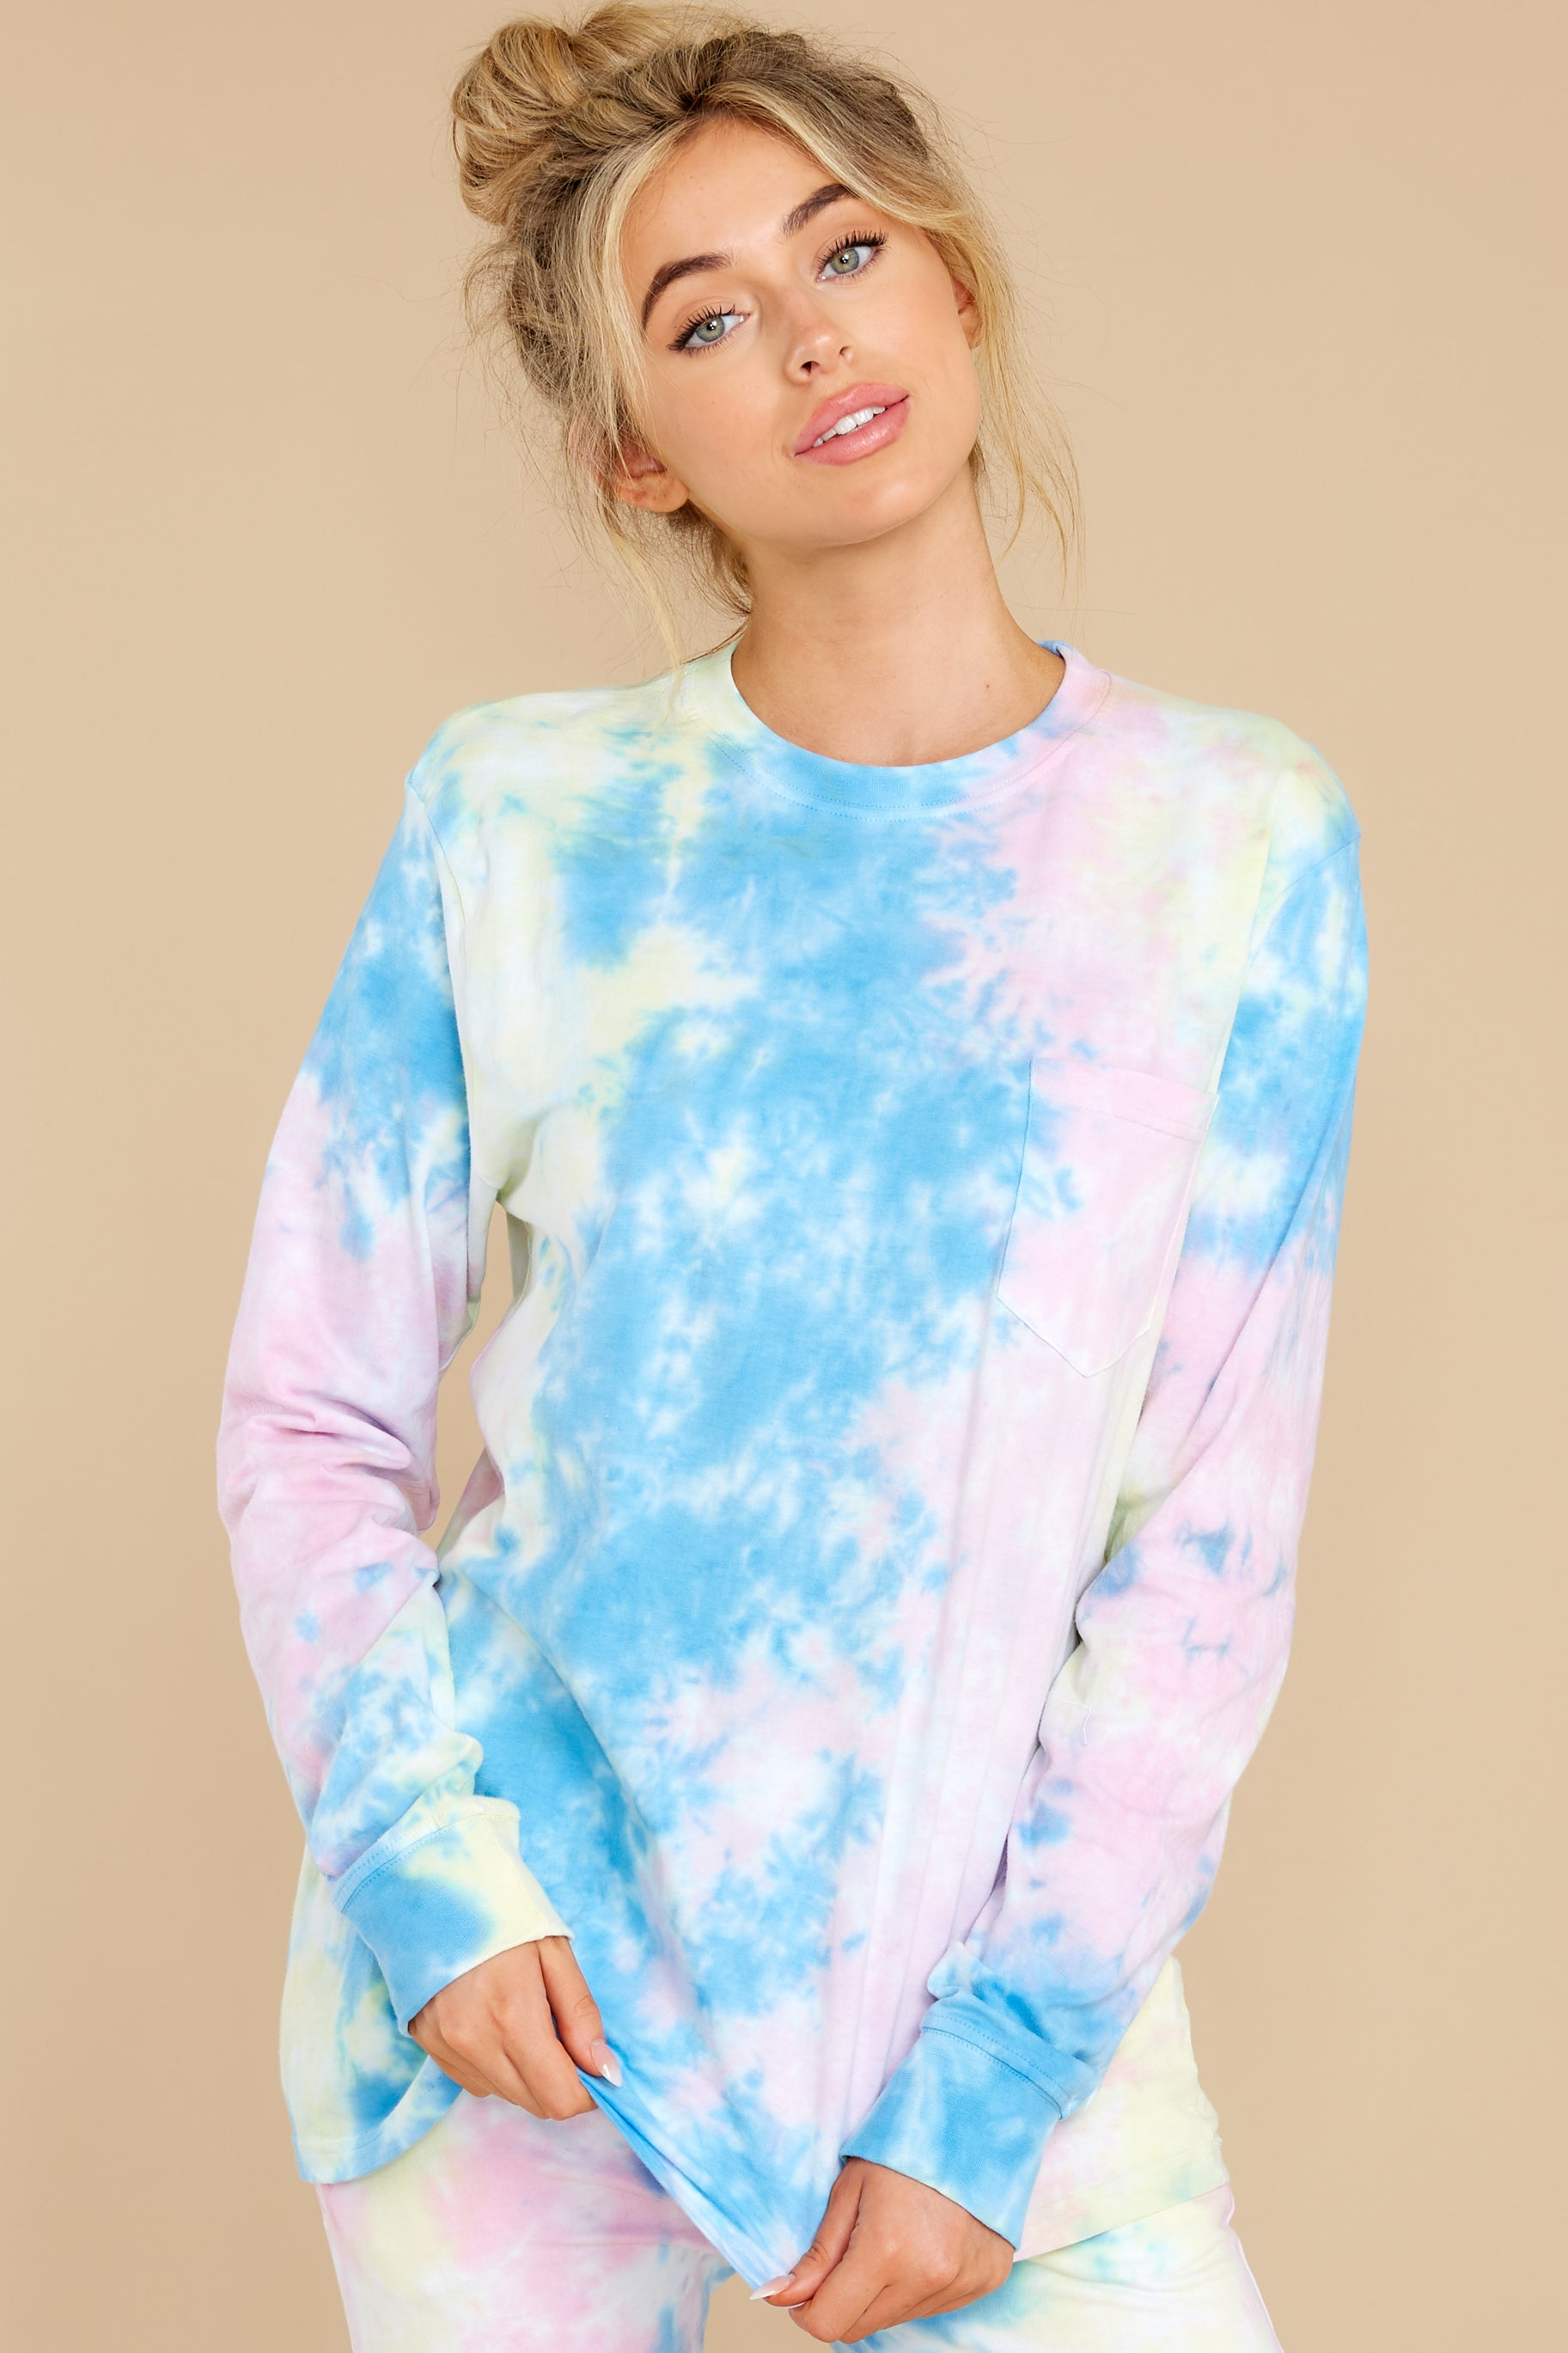 6 Summer In Sav Pastel Pink Tie Dye Top at reddress.com